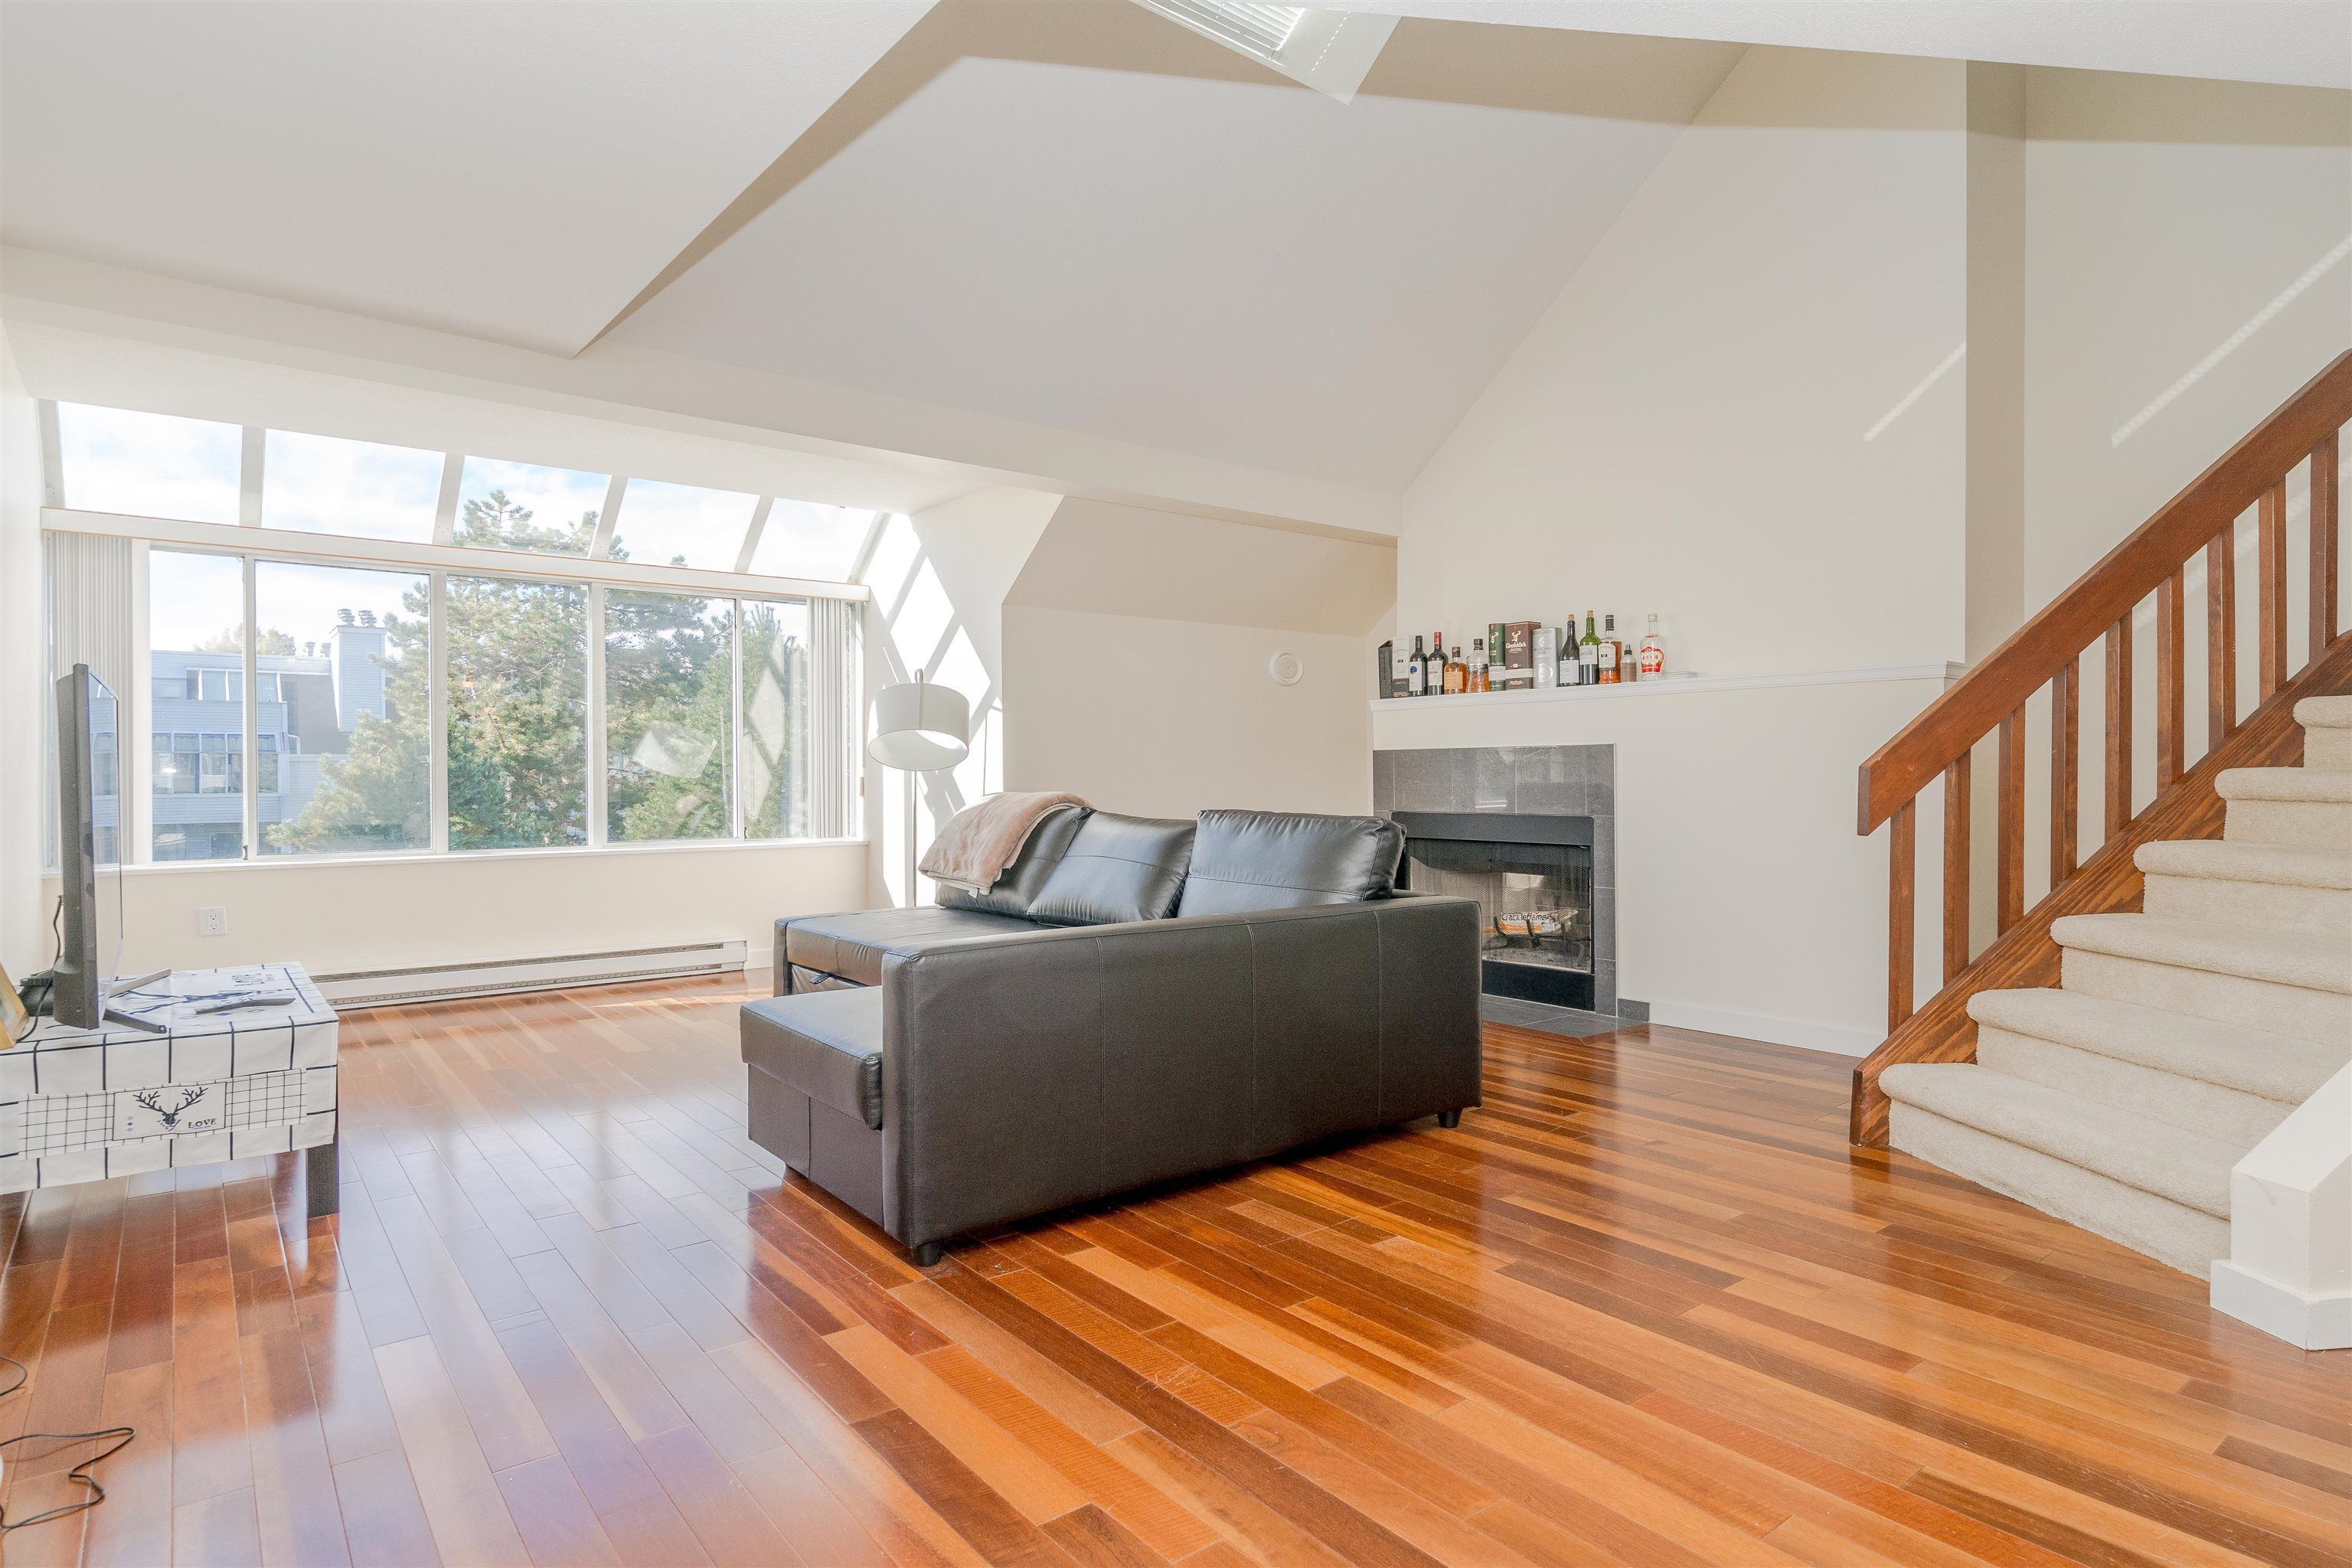 """Main Photo: 304 7471 BLUNDELL Road in Richmond: Brighouse South Condo for sale in """"CANTERBURY COURT"""" : MLS®# R2625296"""